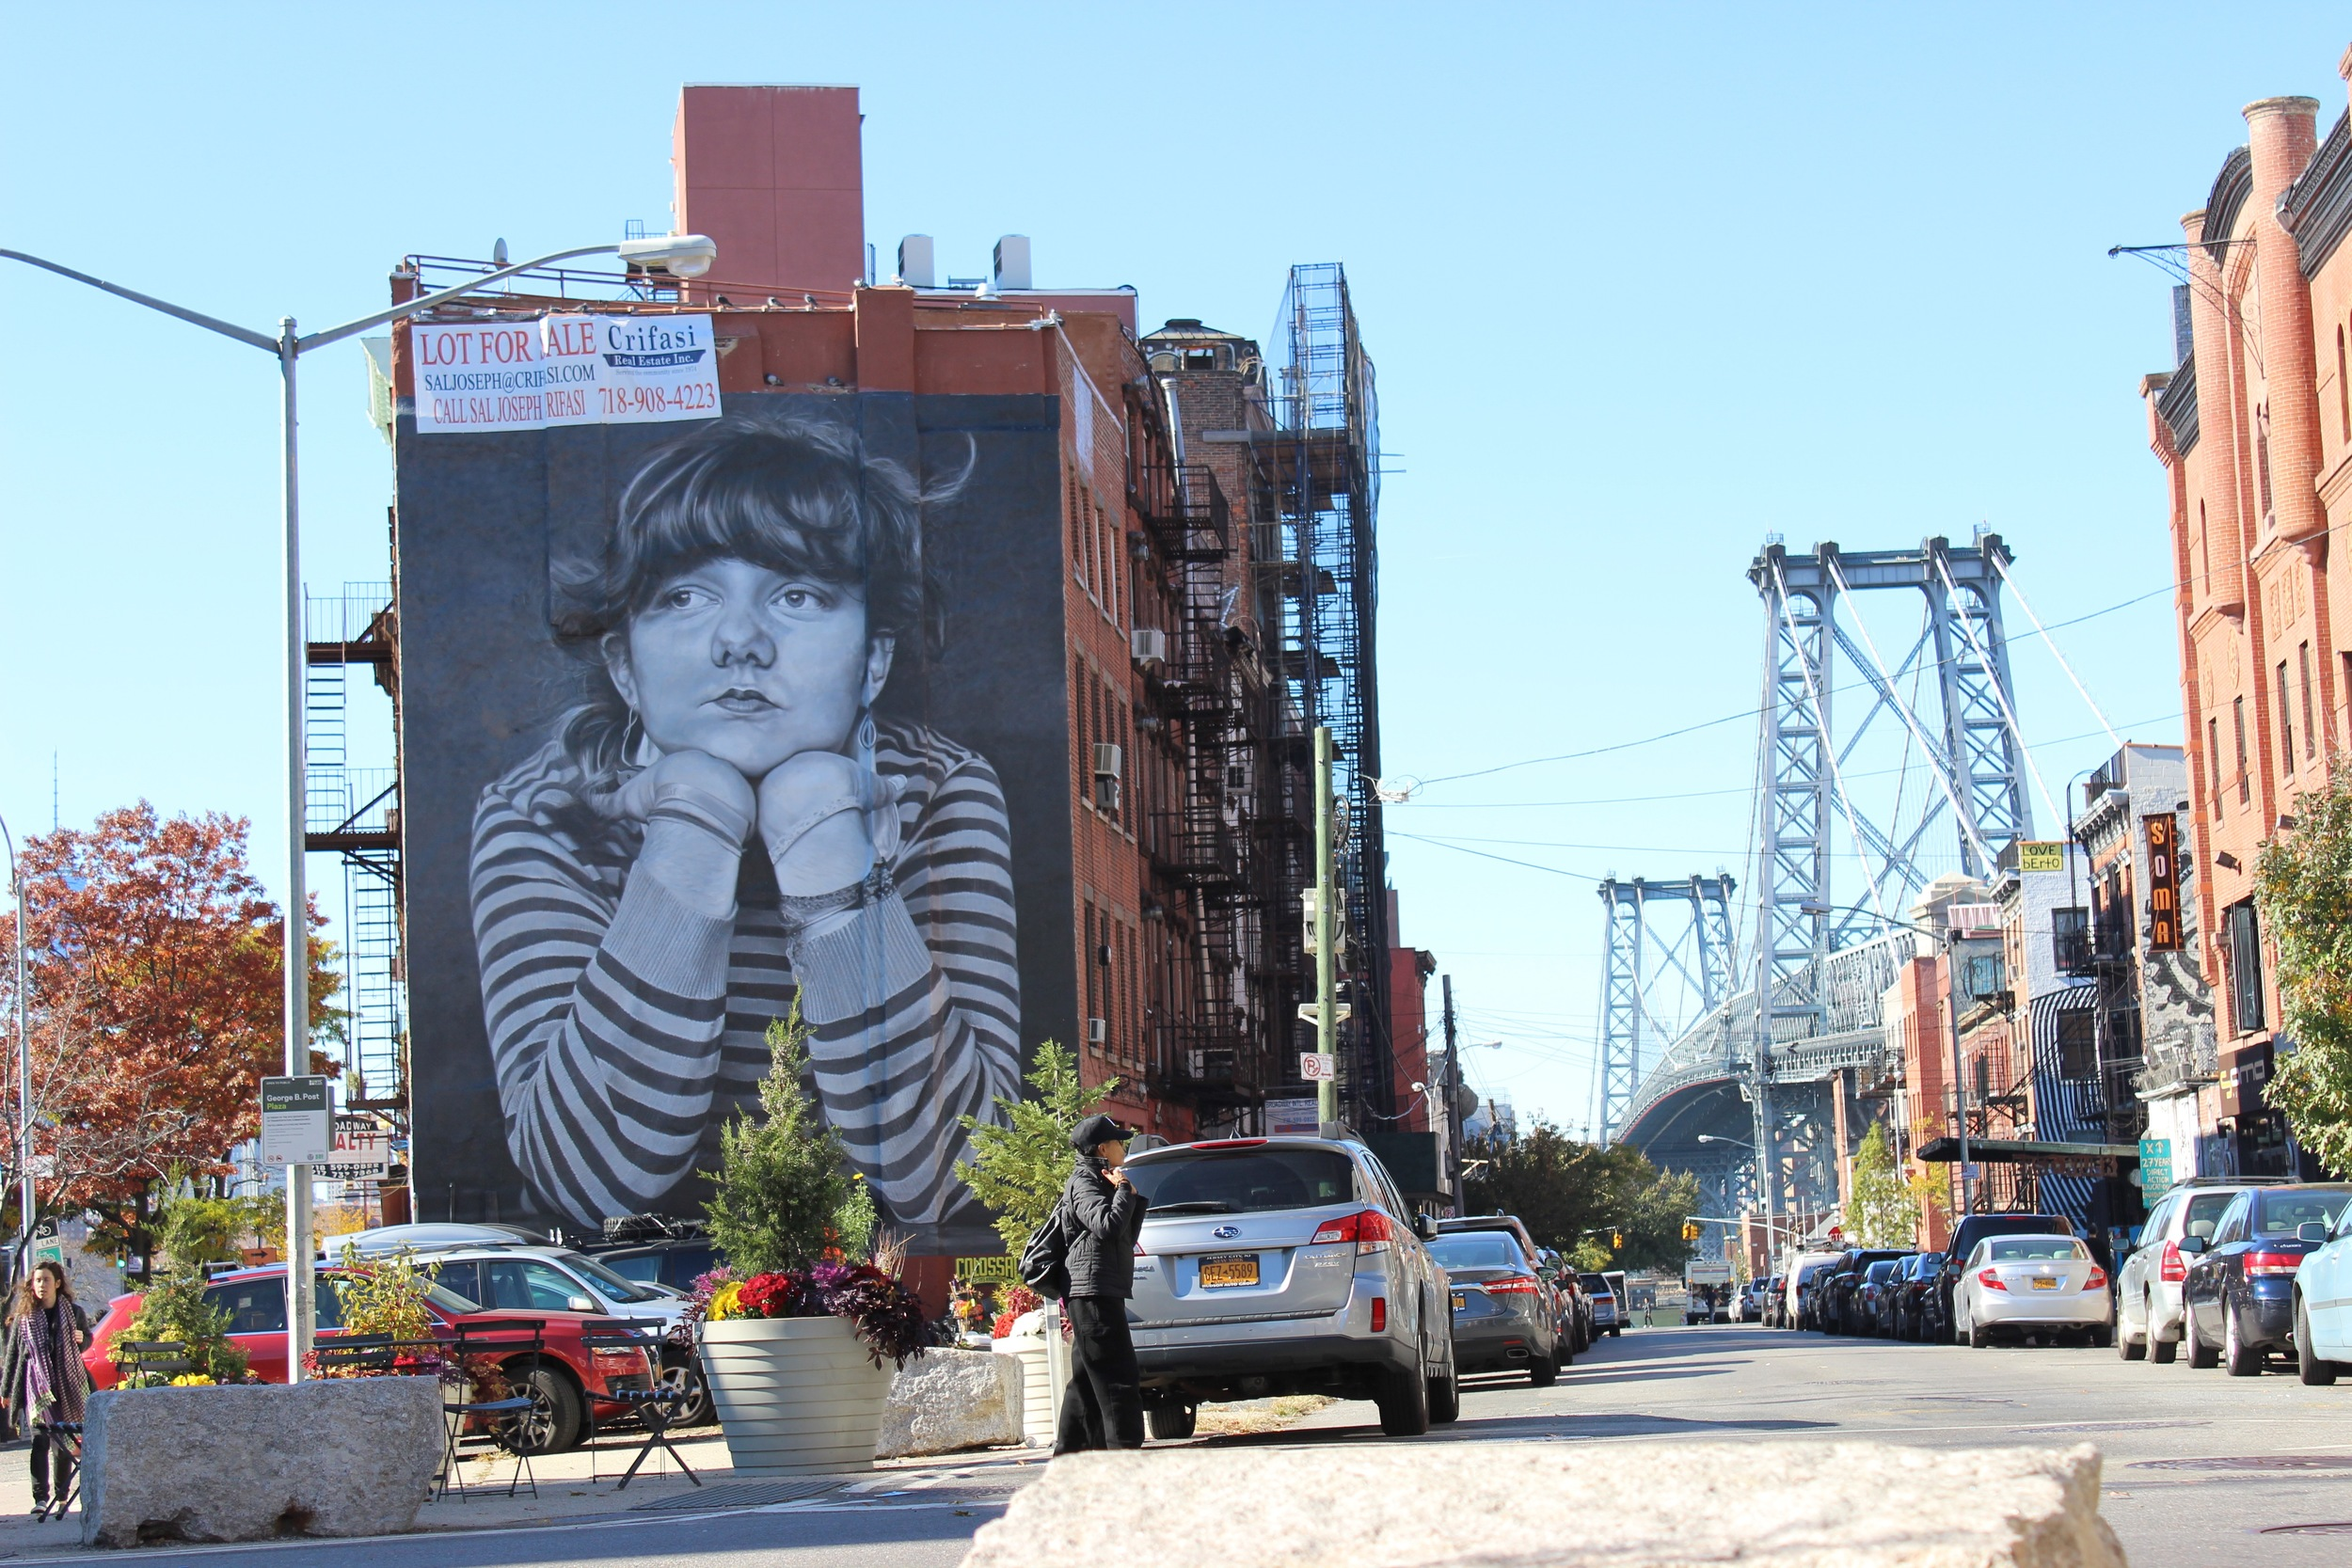 So much great street art in Brooklyn.